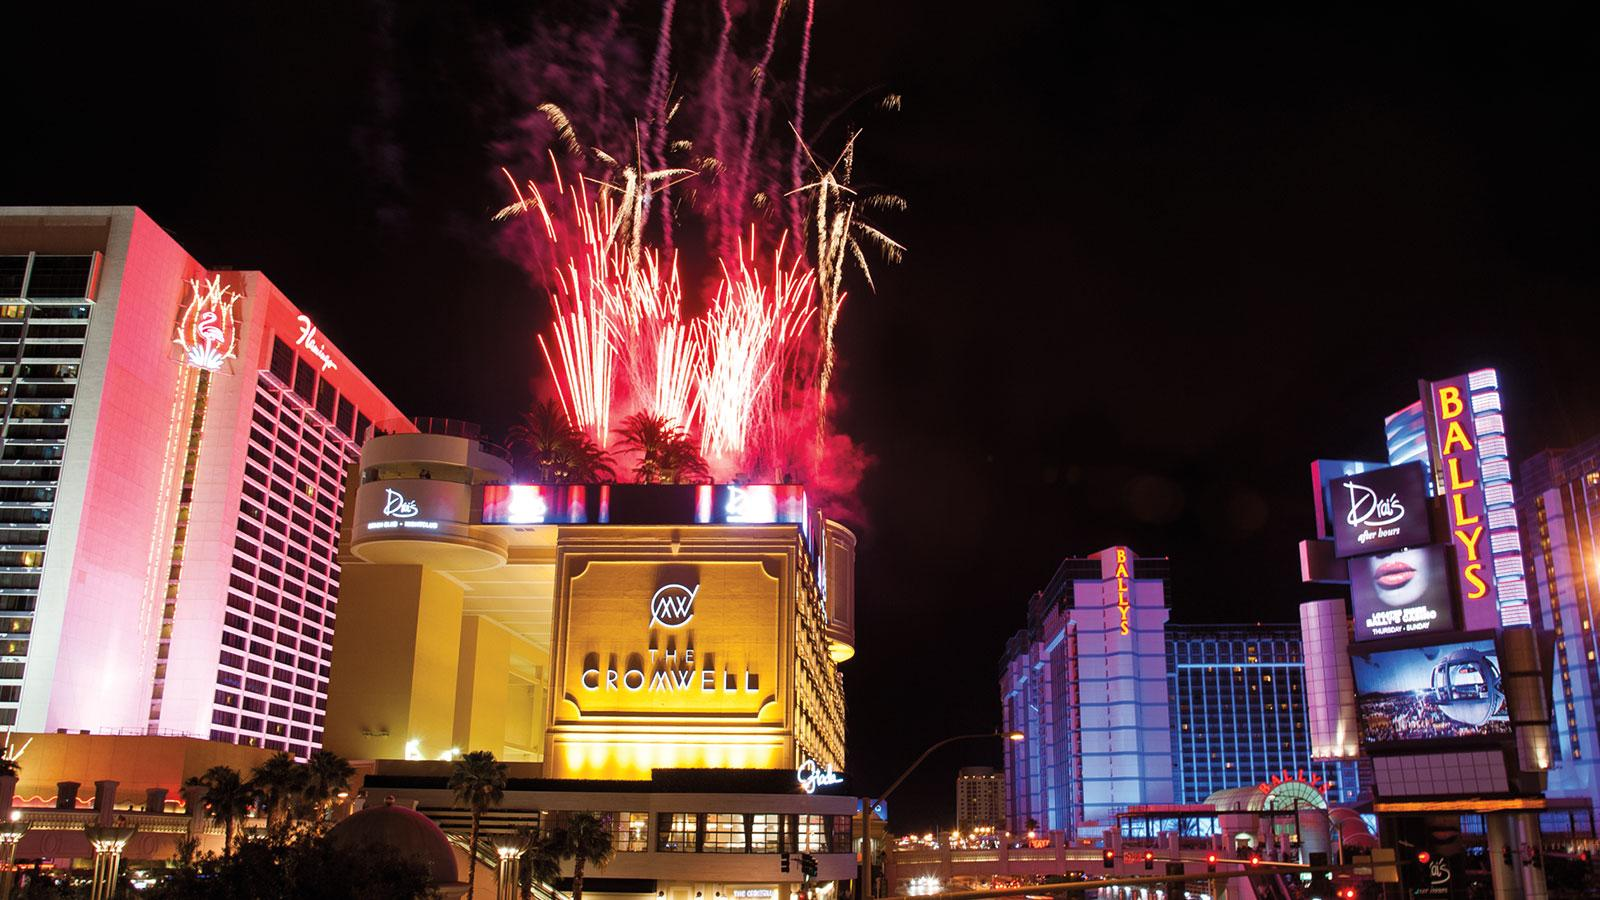 A view down the strip featuring The Cromwell (with fireworks), one of several newly-opened hotels that speak to Vegas's continued energy.